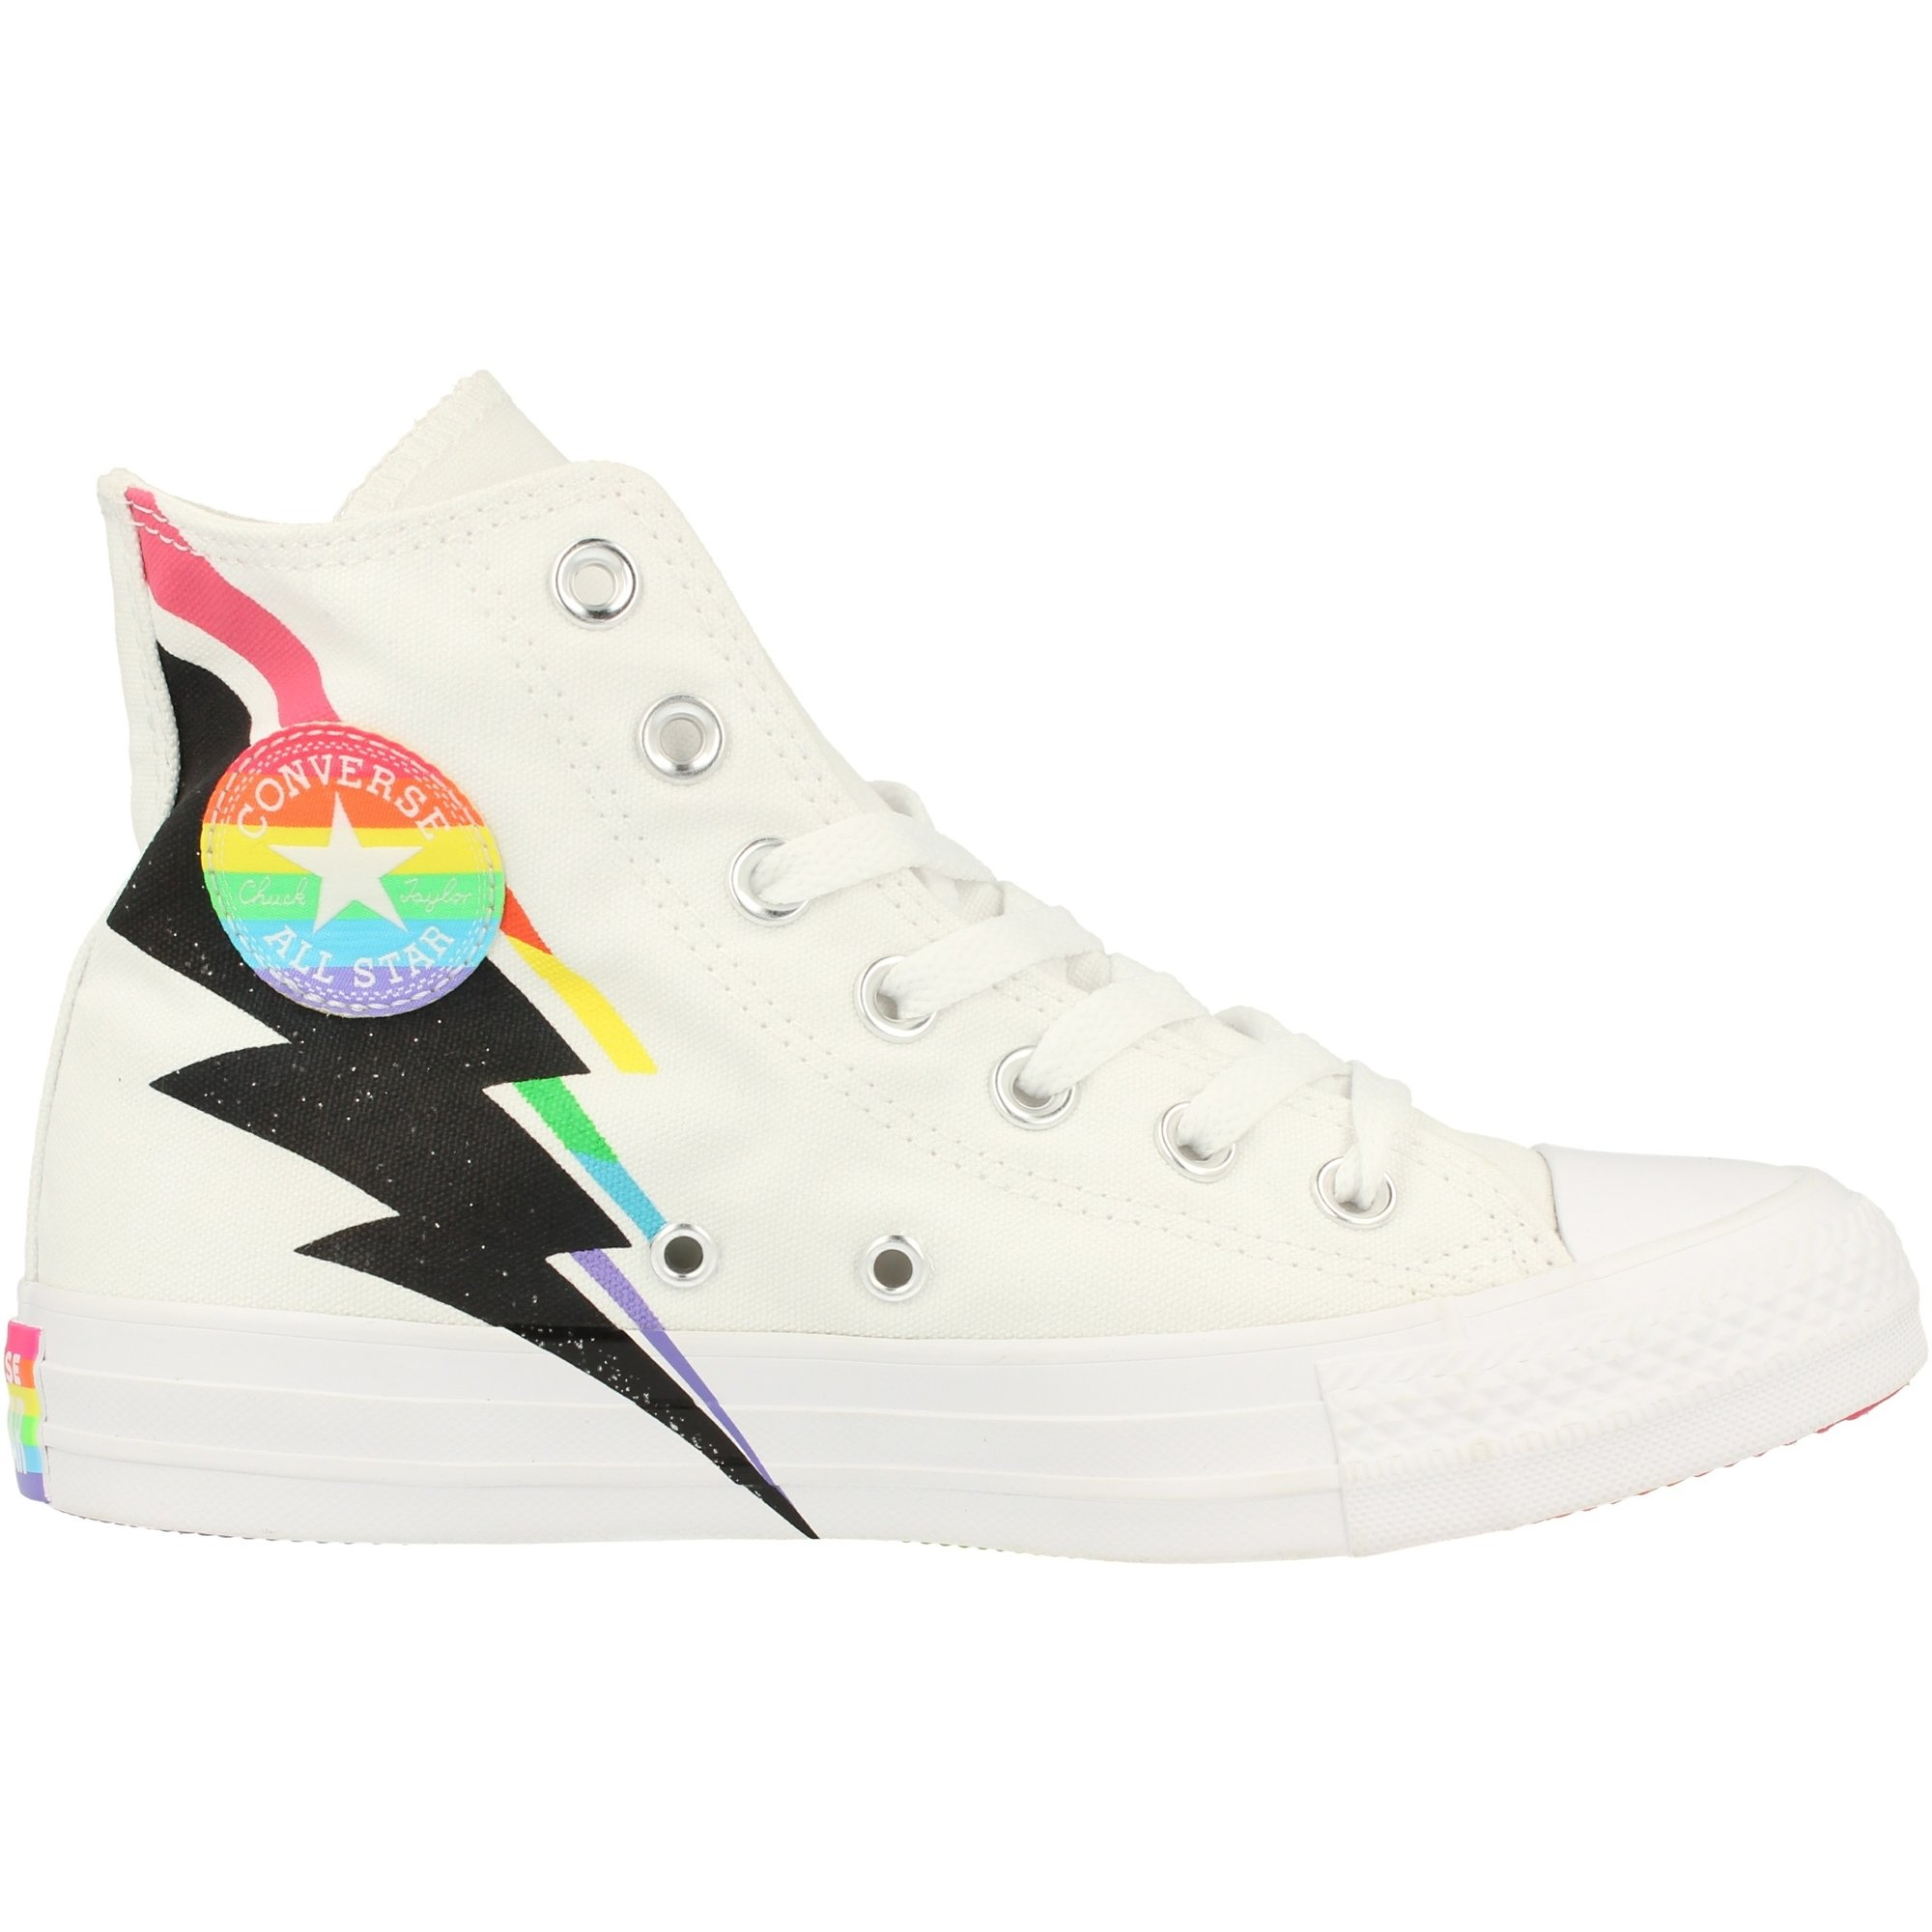 Converse Chuck Taylor All Star Pride Hi White/Black/Multi Canvas Adult